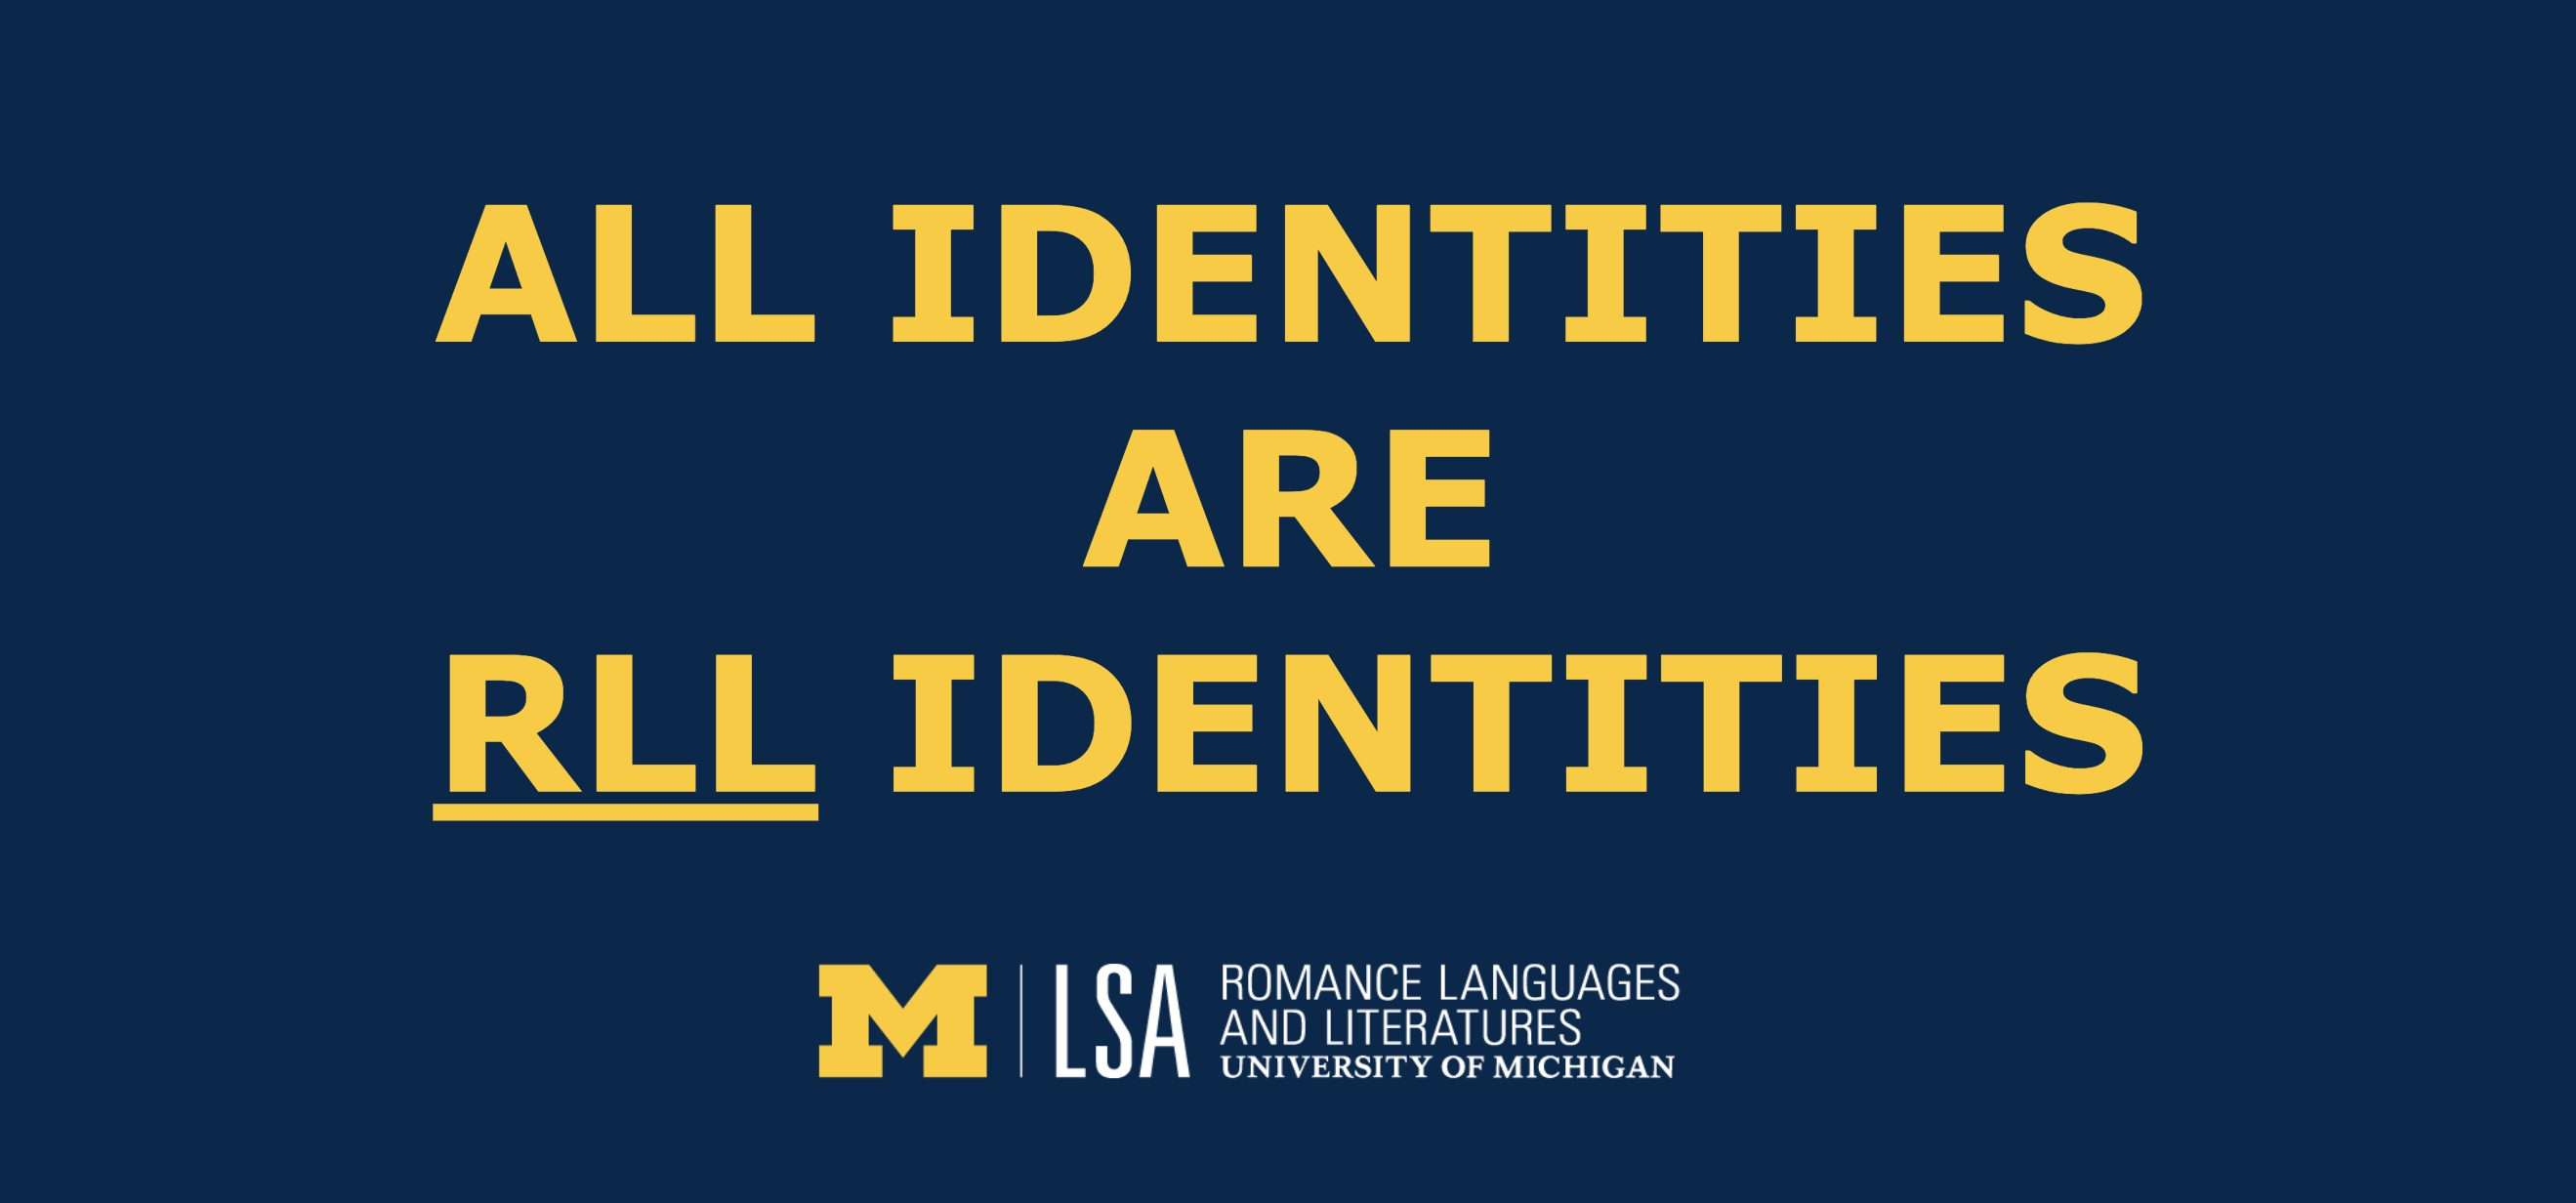 All identities are RLL identities